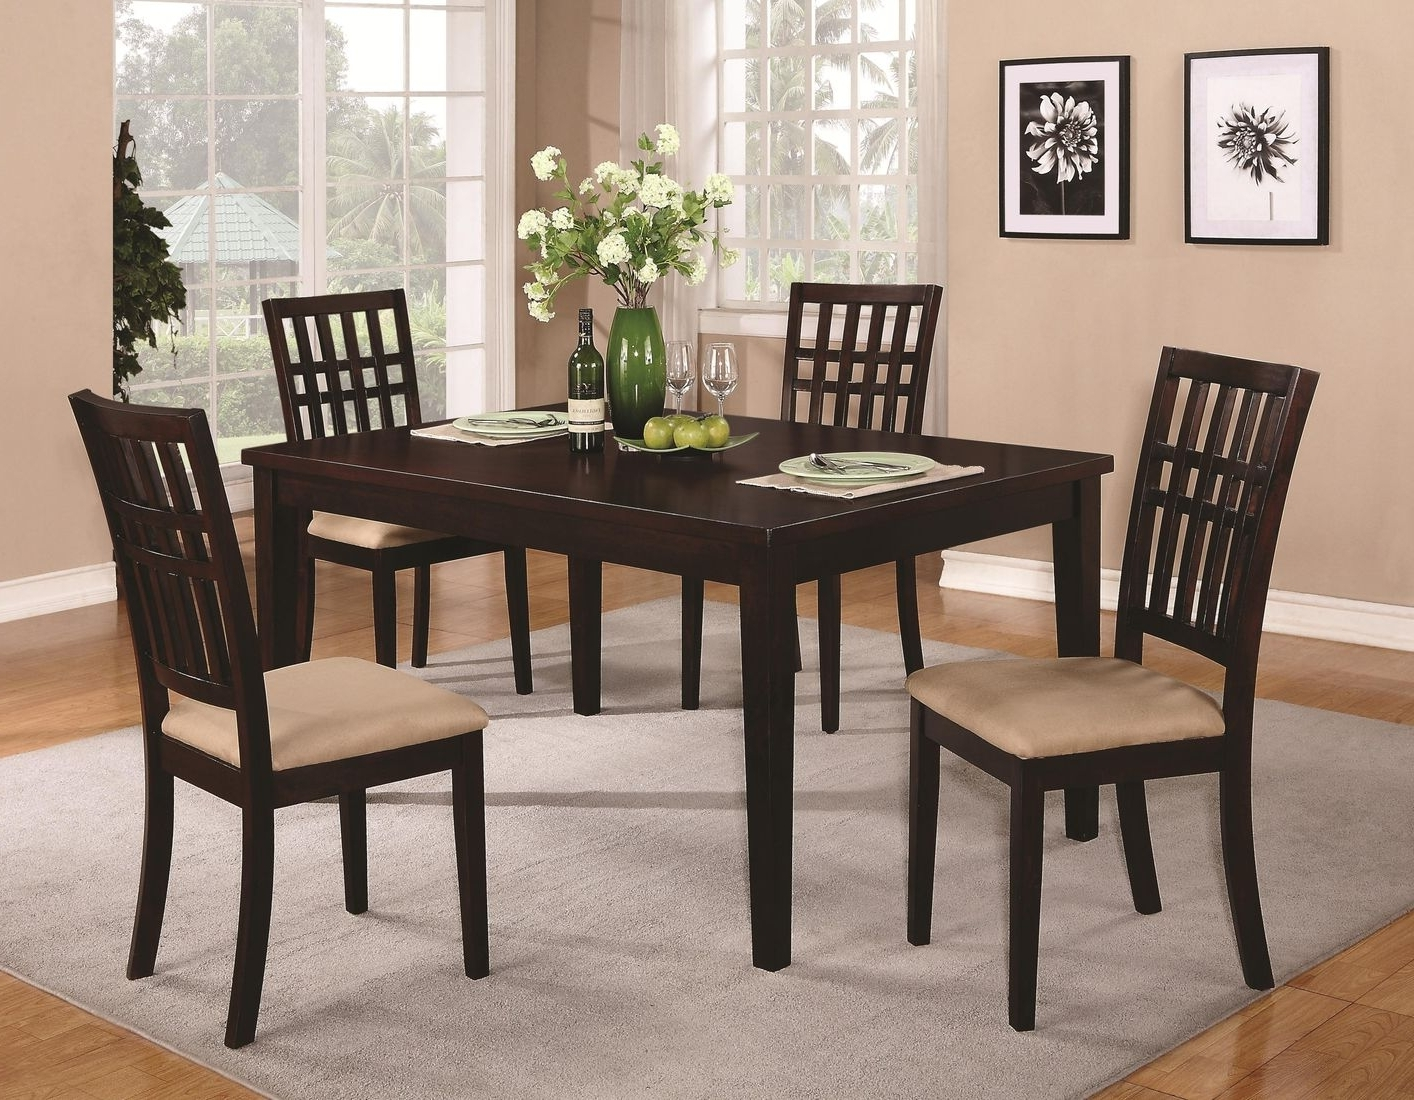 Brandt Dark Cherry Wood Dining Table – Steal A Sofa Furniture Intended For Most Popular Sofa Chairs With Dining Table (View 2 of 20)